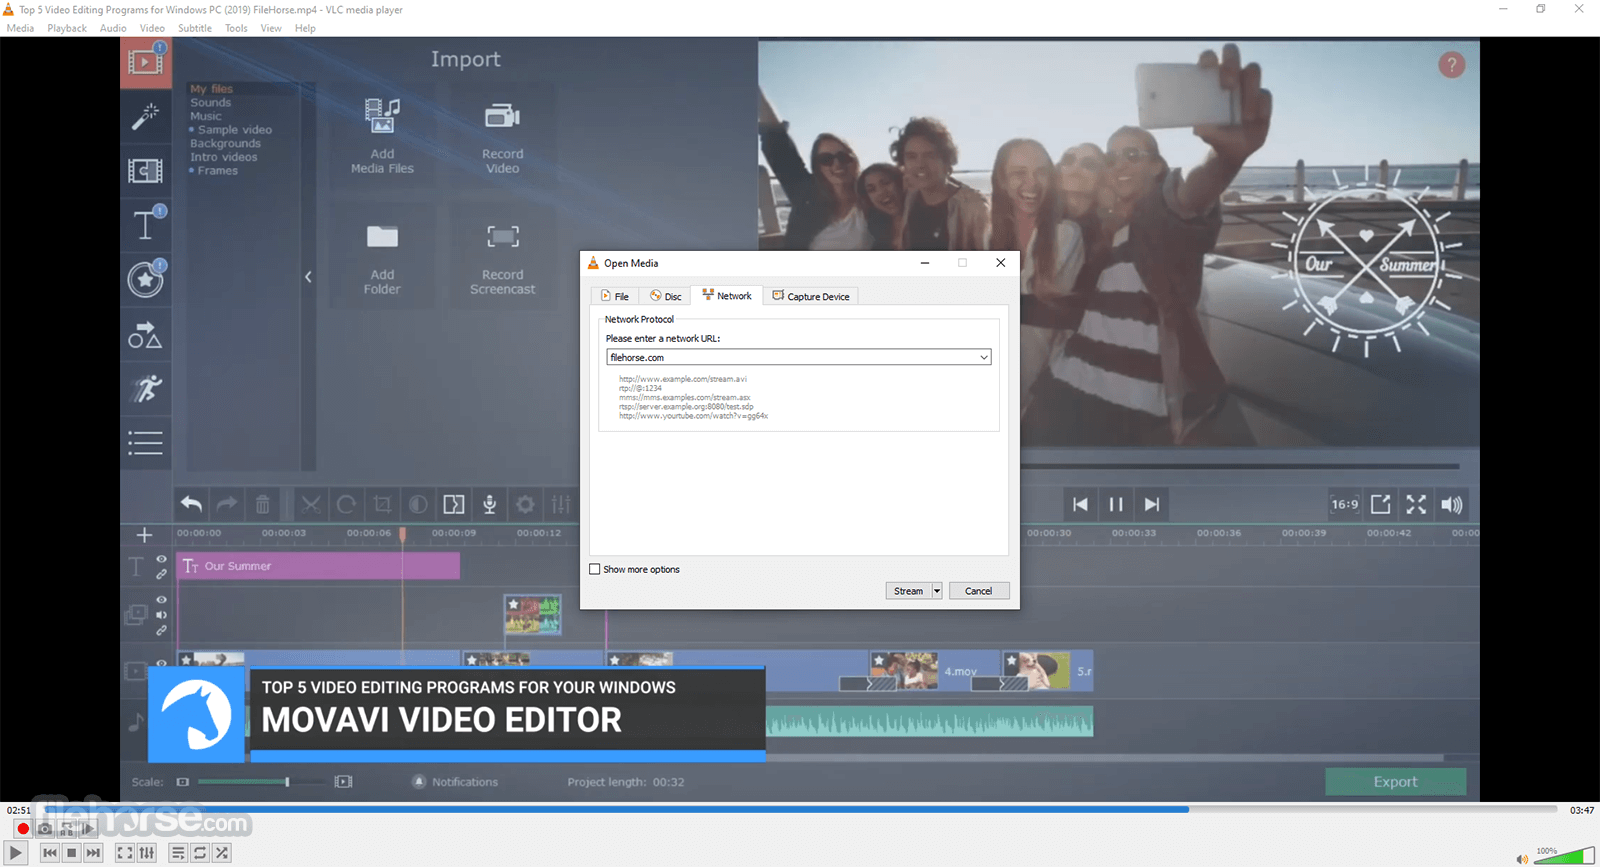 VLC Media Player 2.1.5 (32-bit) Screenshot 3